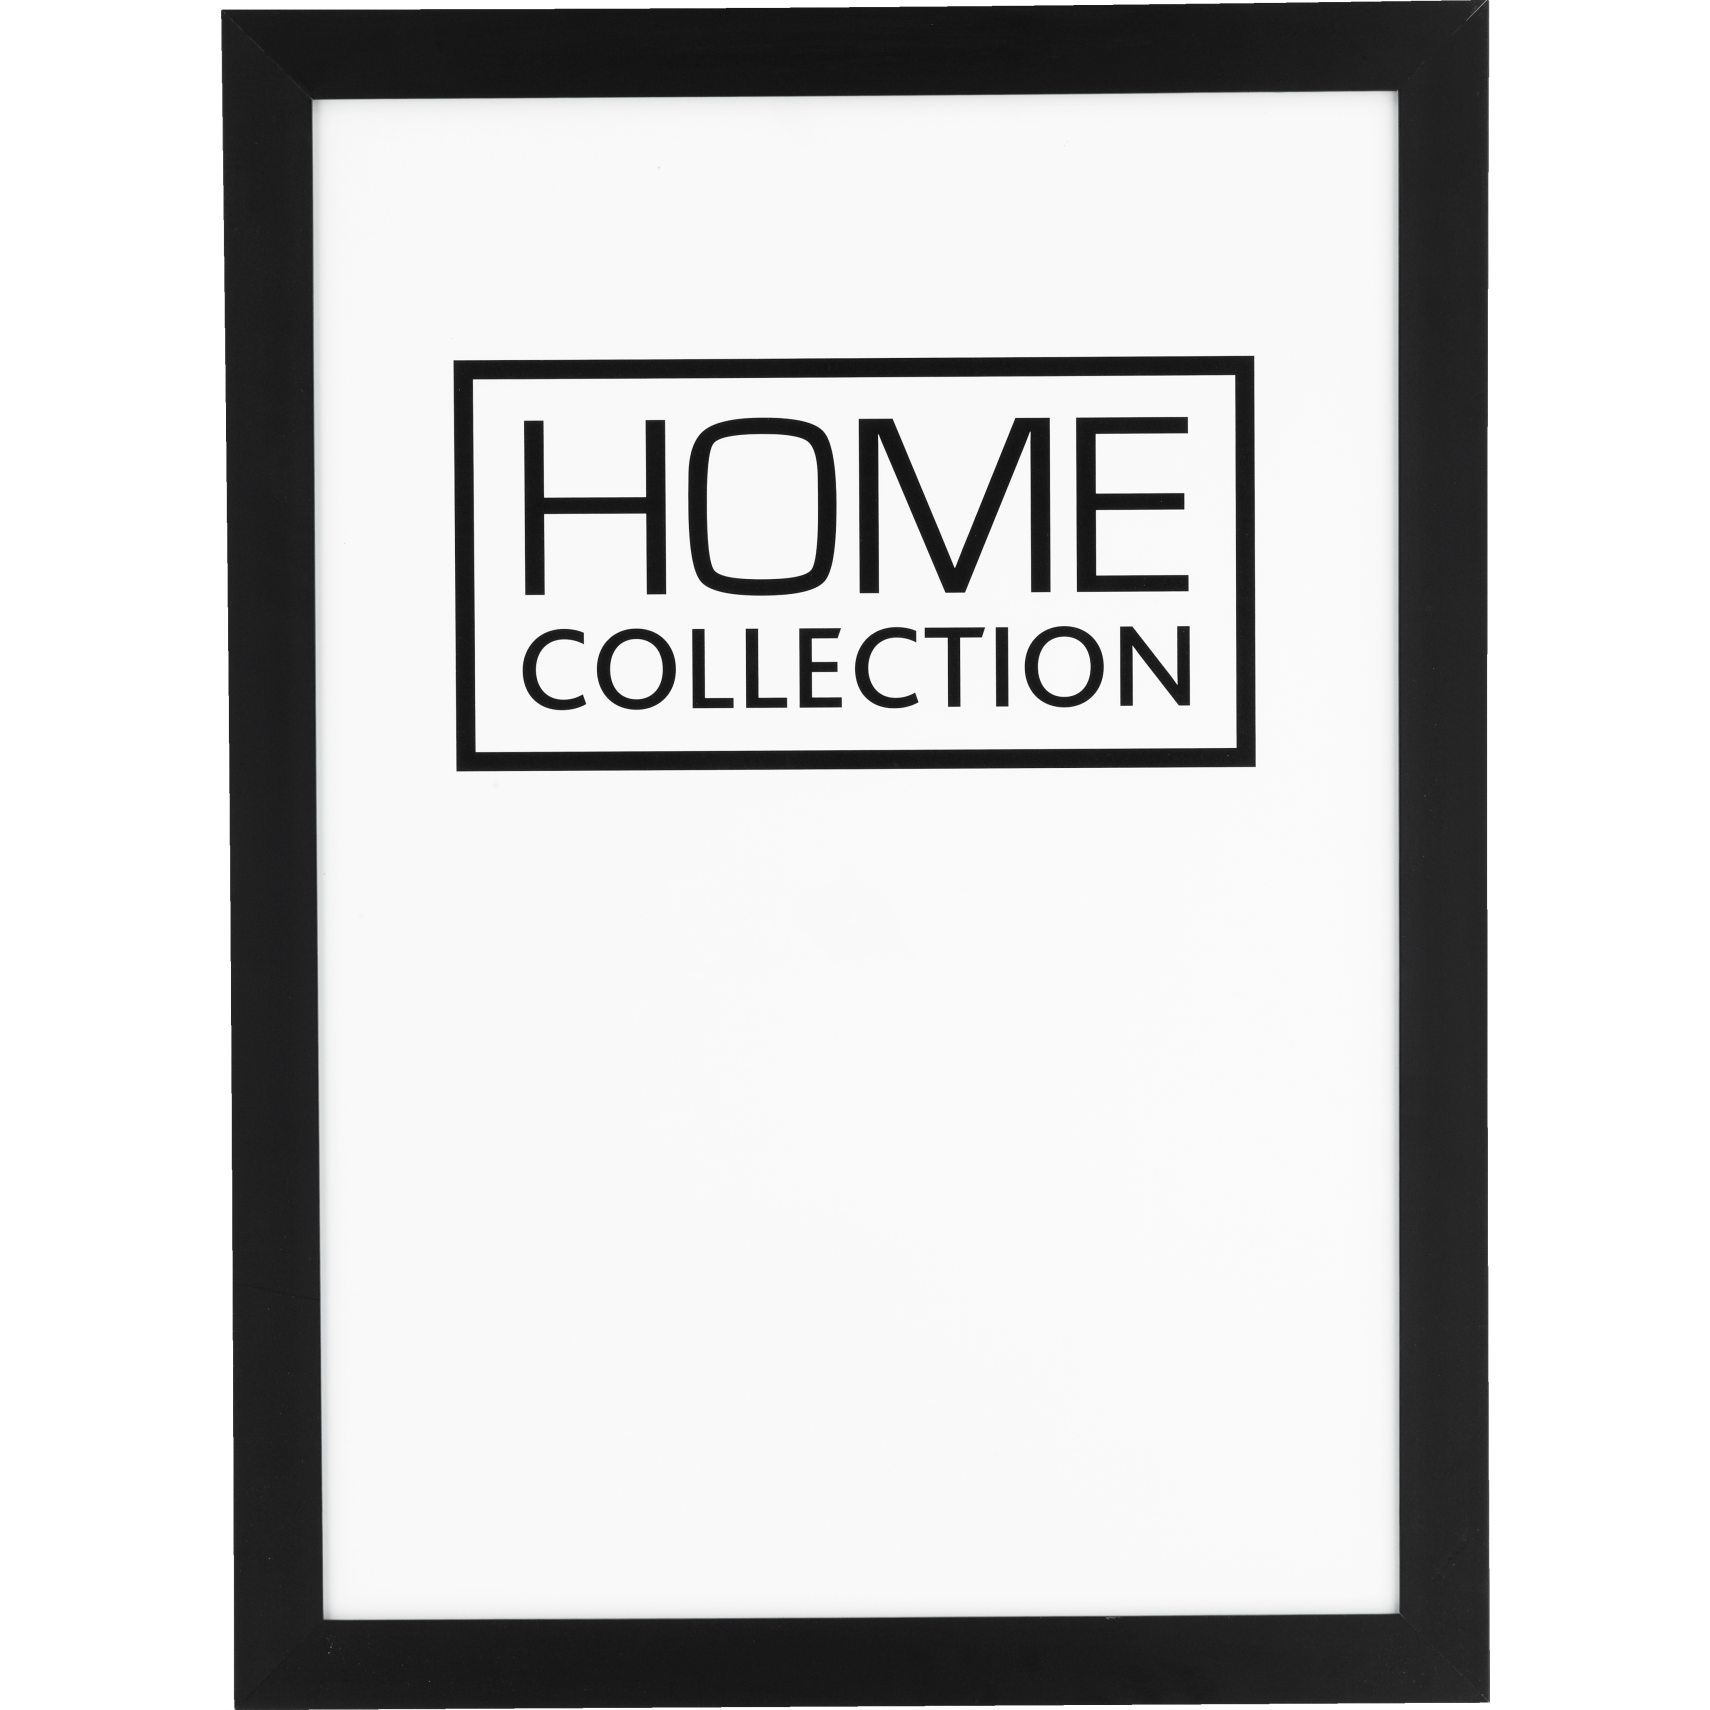 HOME COLLECTION Ram 40 x 50 x 2 cm - Svart träram